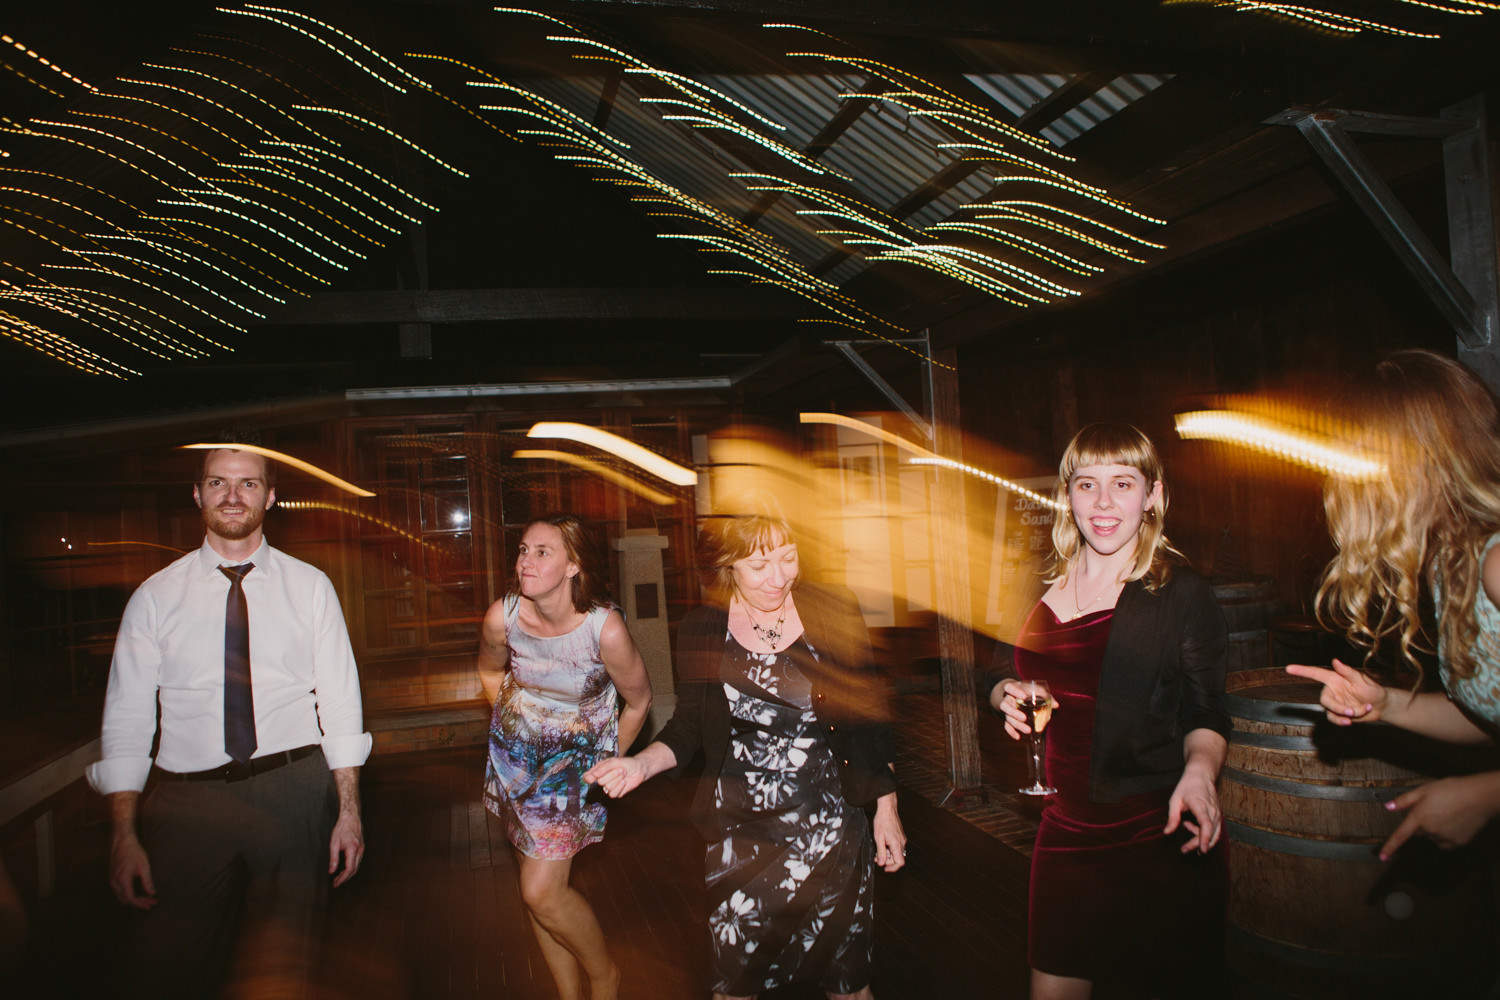 Dancefloor fun at Hunter Valley wedding